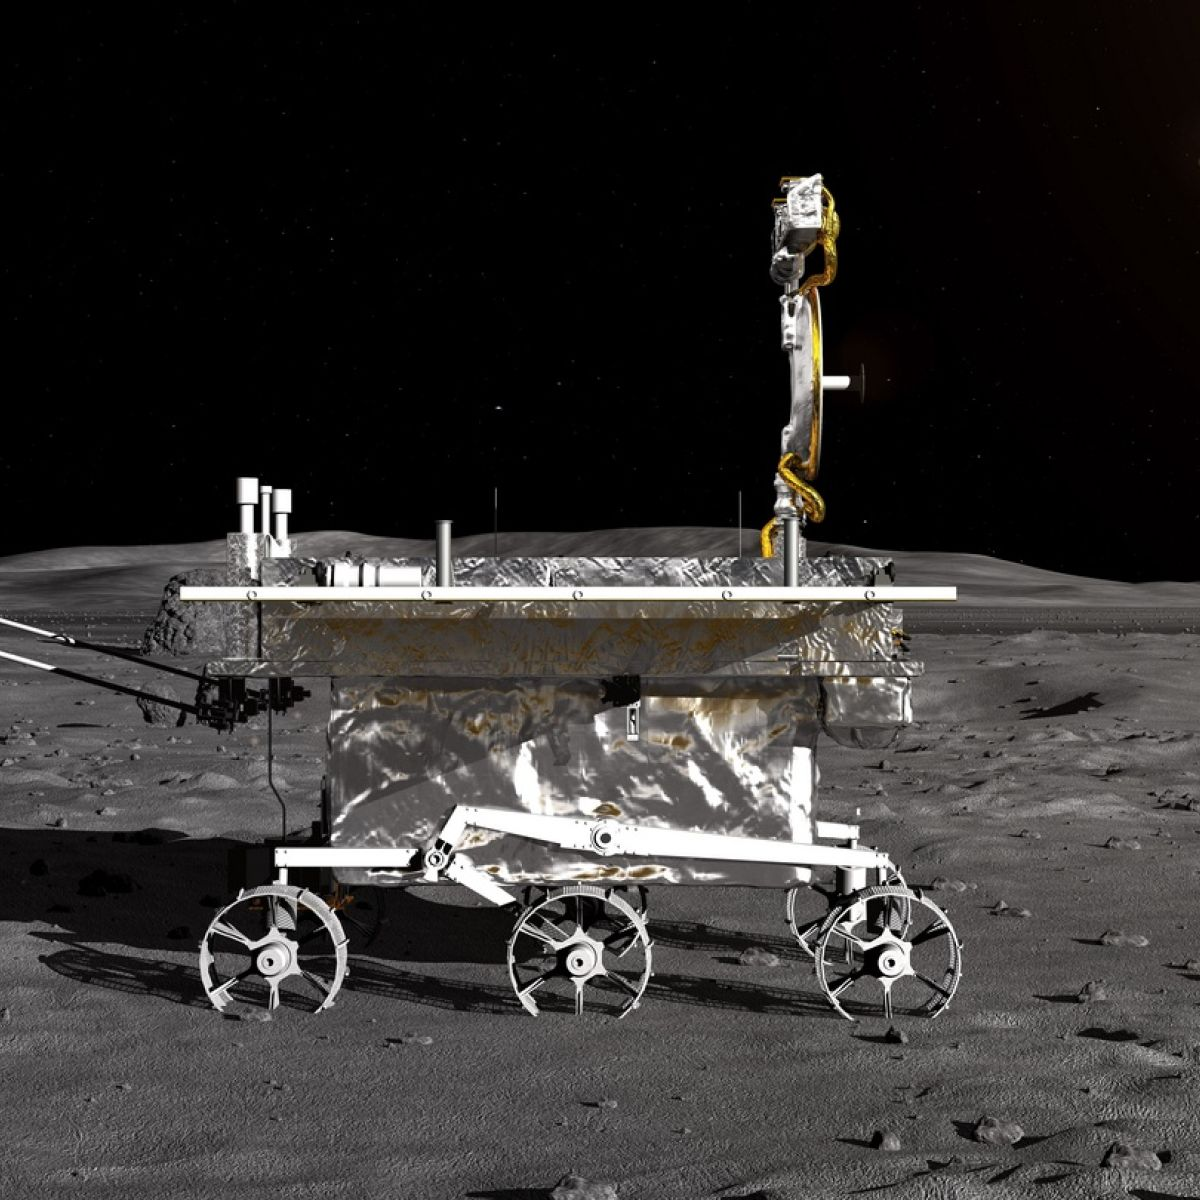 Thrilling' video of moon landing by Chinese rover released